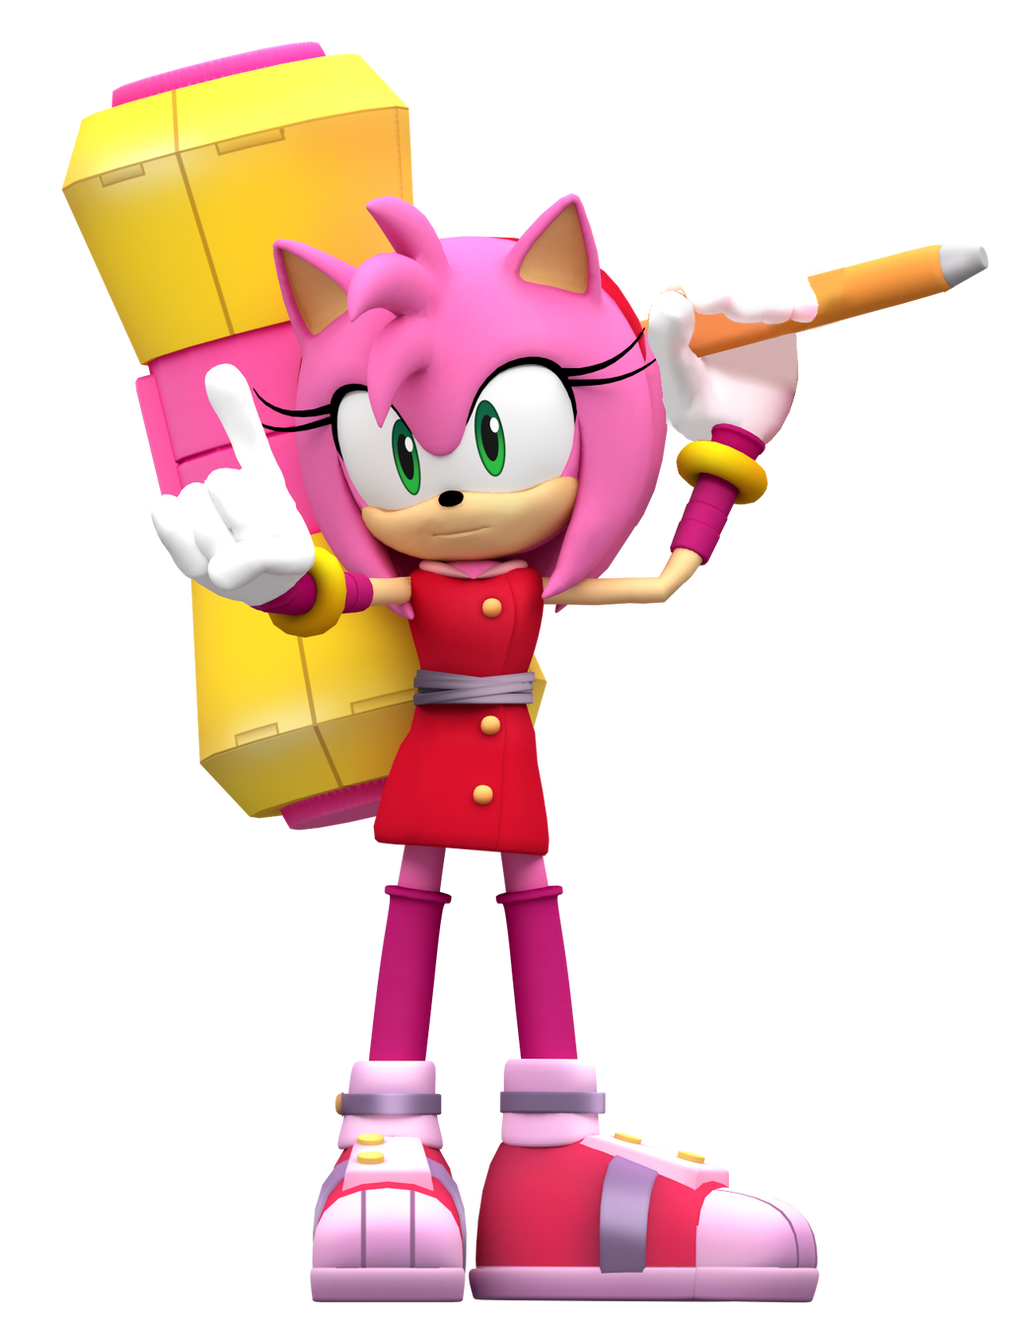 Sonic boom Amy Render! by Nibroc-Rock on DeviantArt Sonic Boom Amy